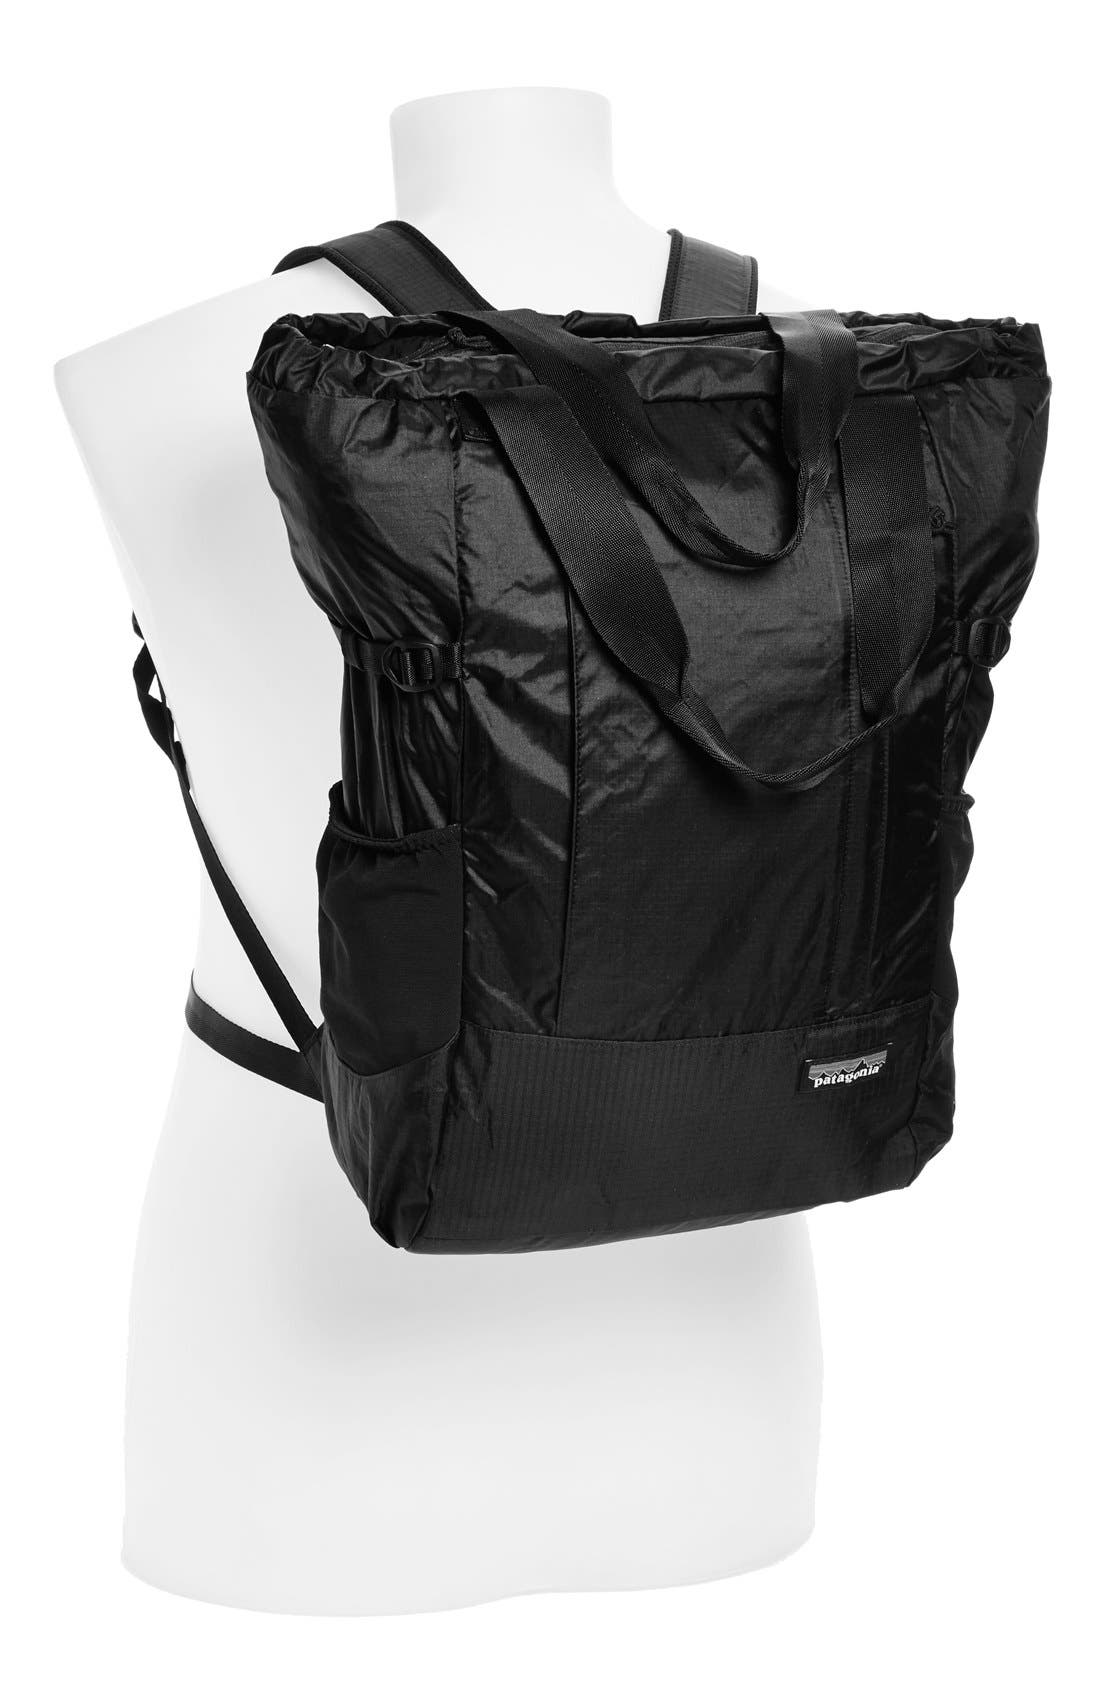 Lightweight Travel Tote Pack,                             Alternate thumbnail 2, color,                             Black